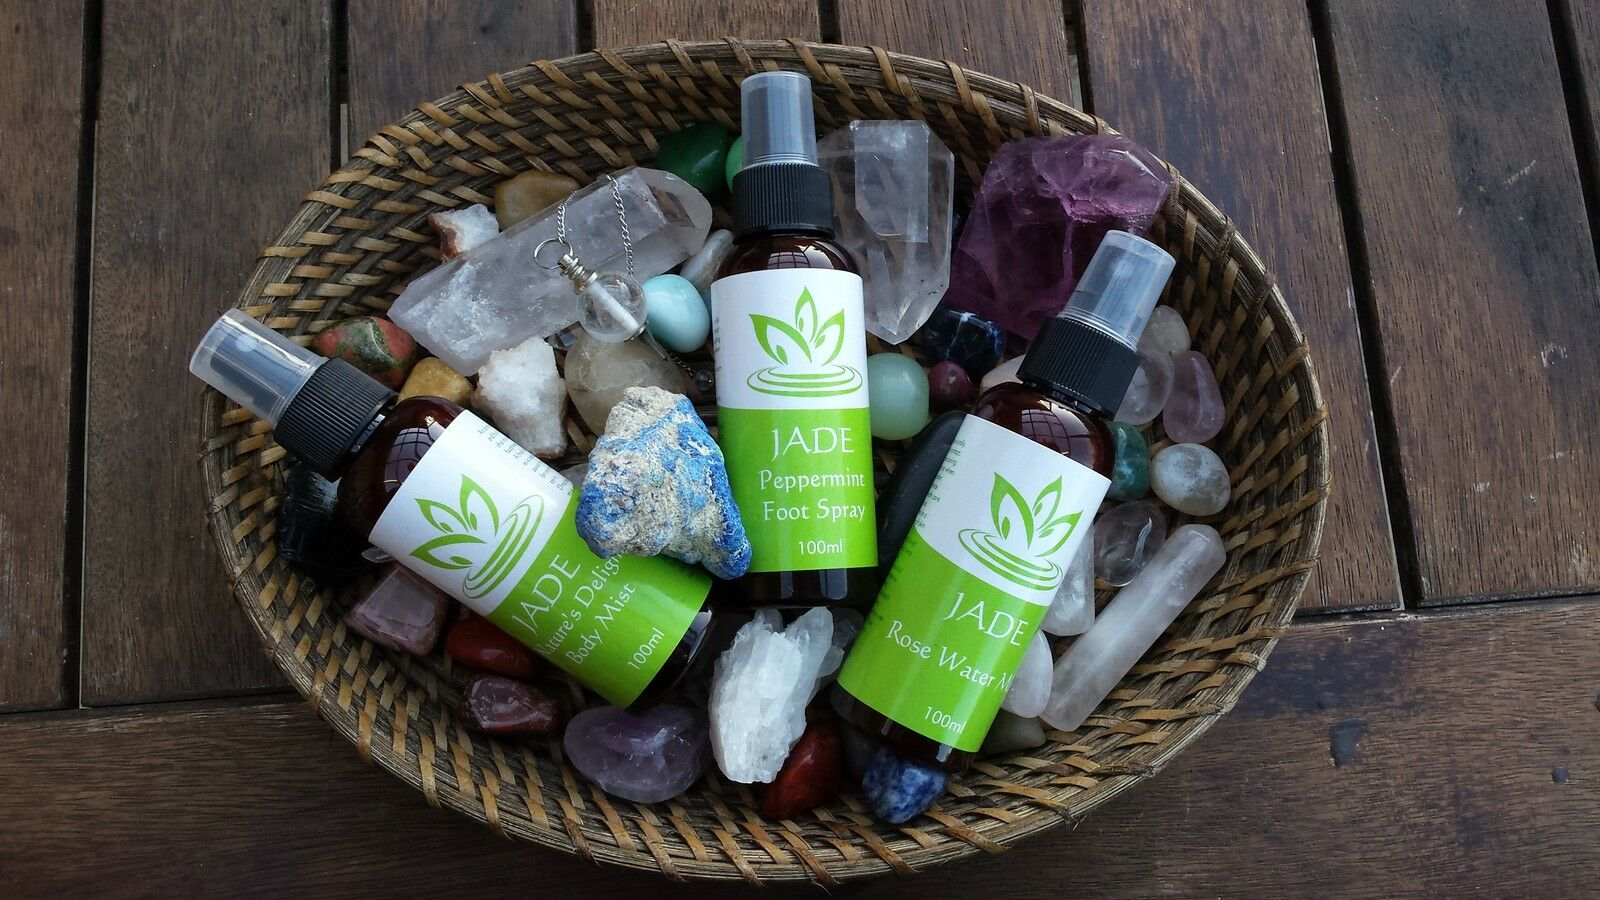 JADE Essential Soul Therapies